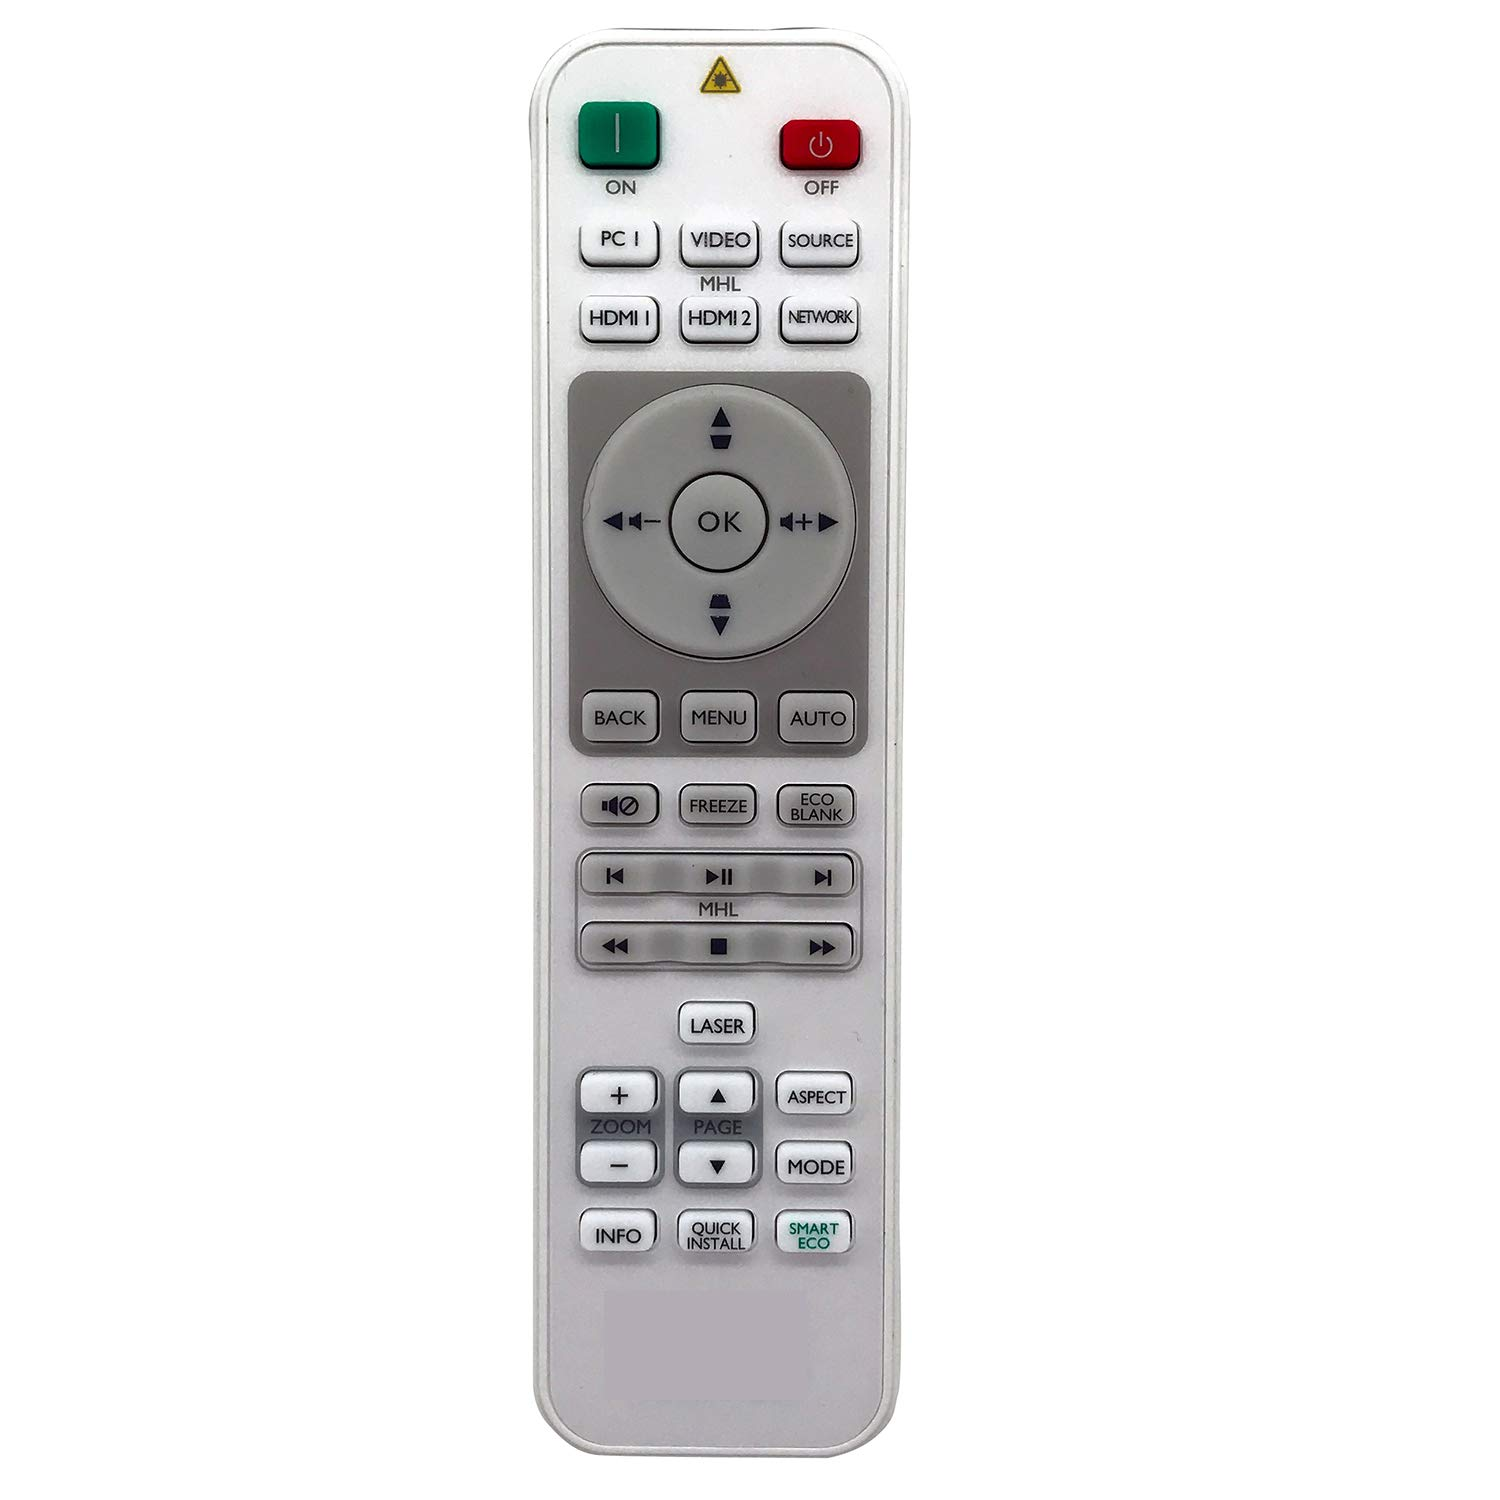 ESolid RCE013 / 5J.JGM06.001 Replacement Remote Control for BenQ MH733 MW732 MW809ST MW826ST MX731 MX808PST MX808ST MX825ST Projectors and More by ESolid